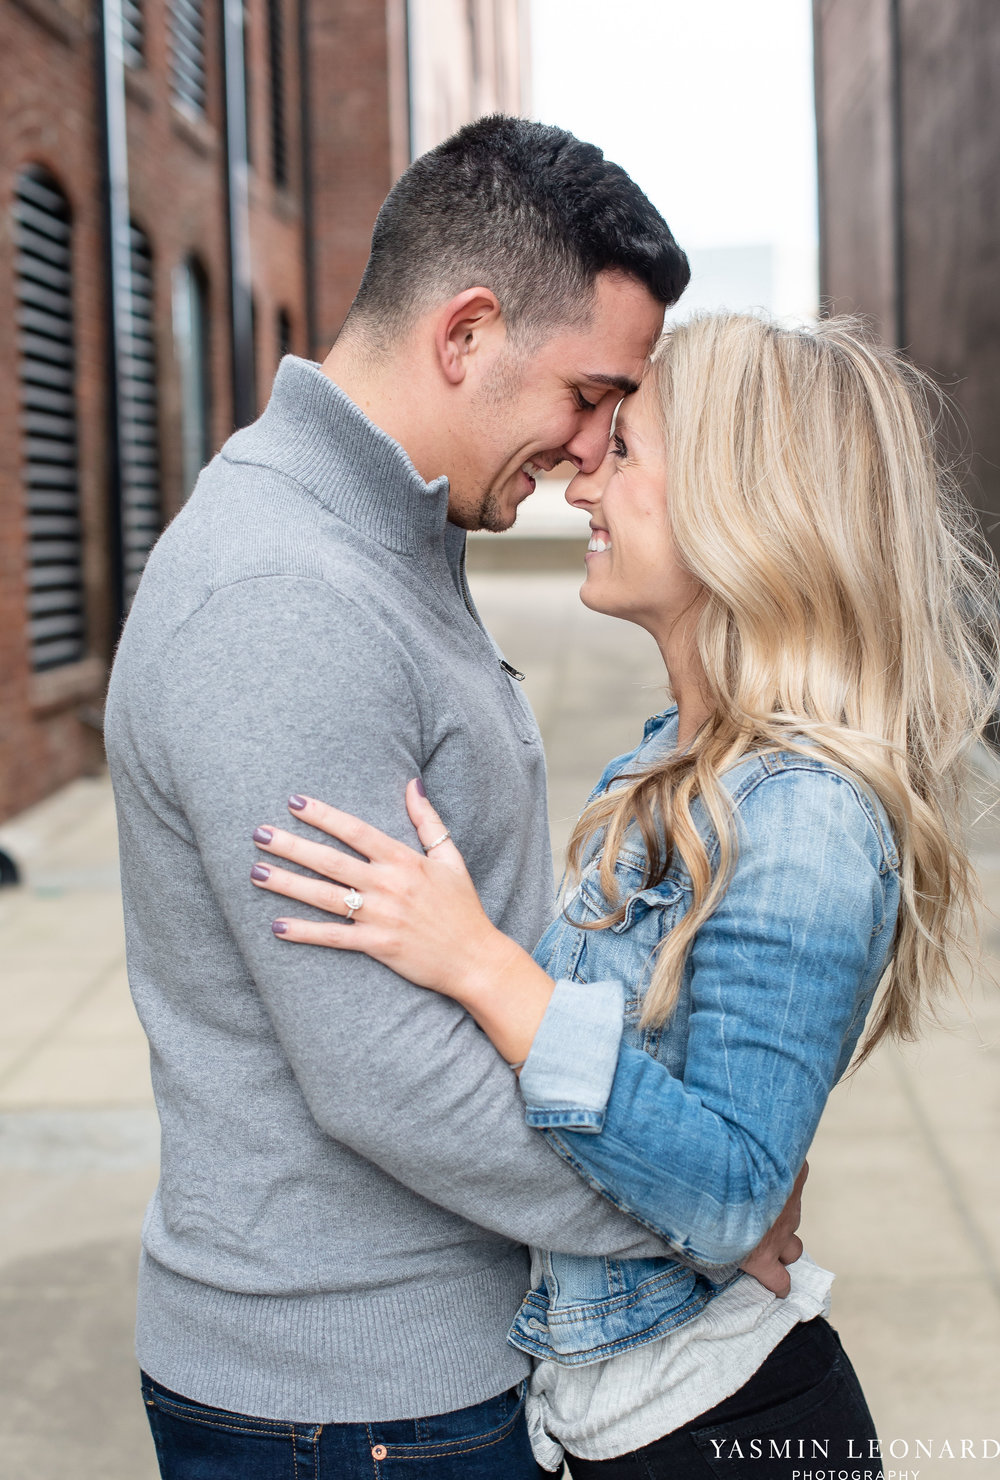 High Point Wedding Photographer - High Point Engagement PIctures - Engagement Session Ideas - Yasmin Leonard Photography - High Point Photographer - NC Wedding Photographer -15.jpg